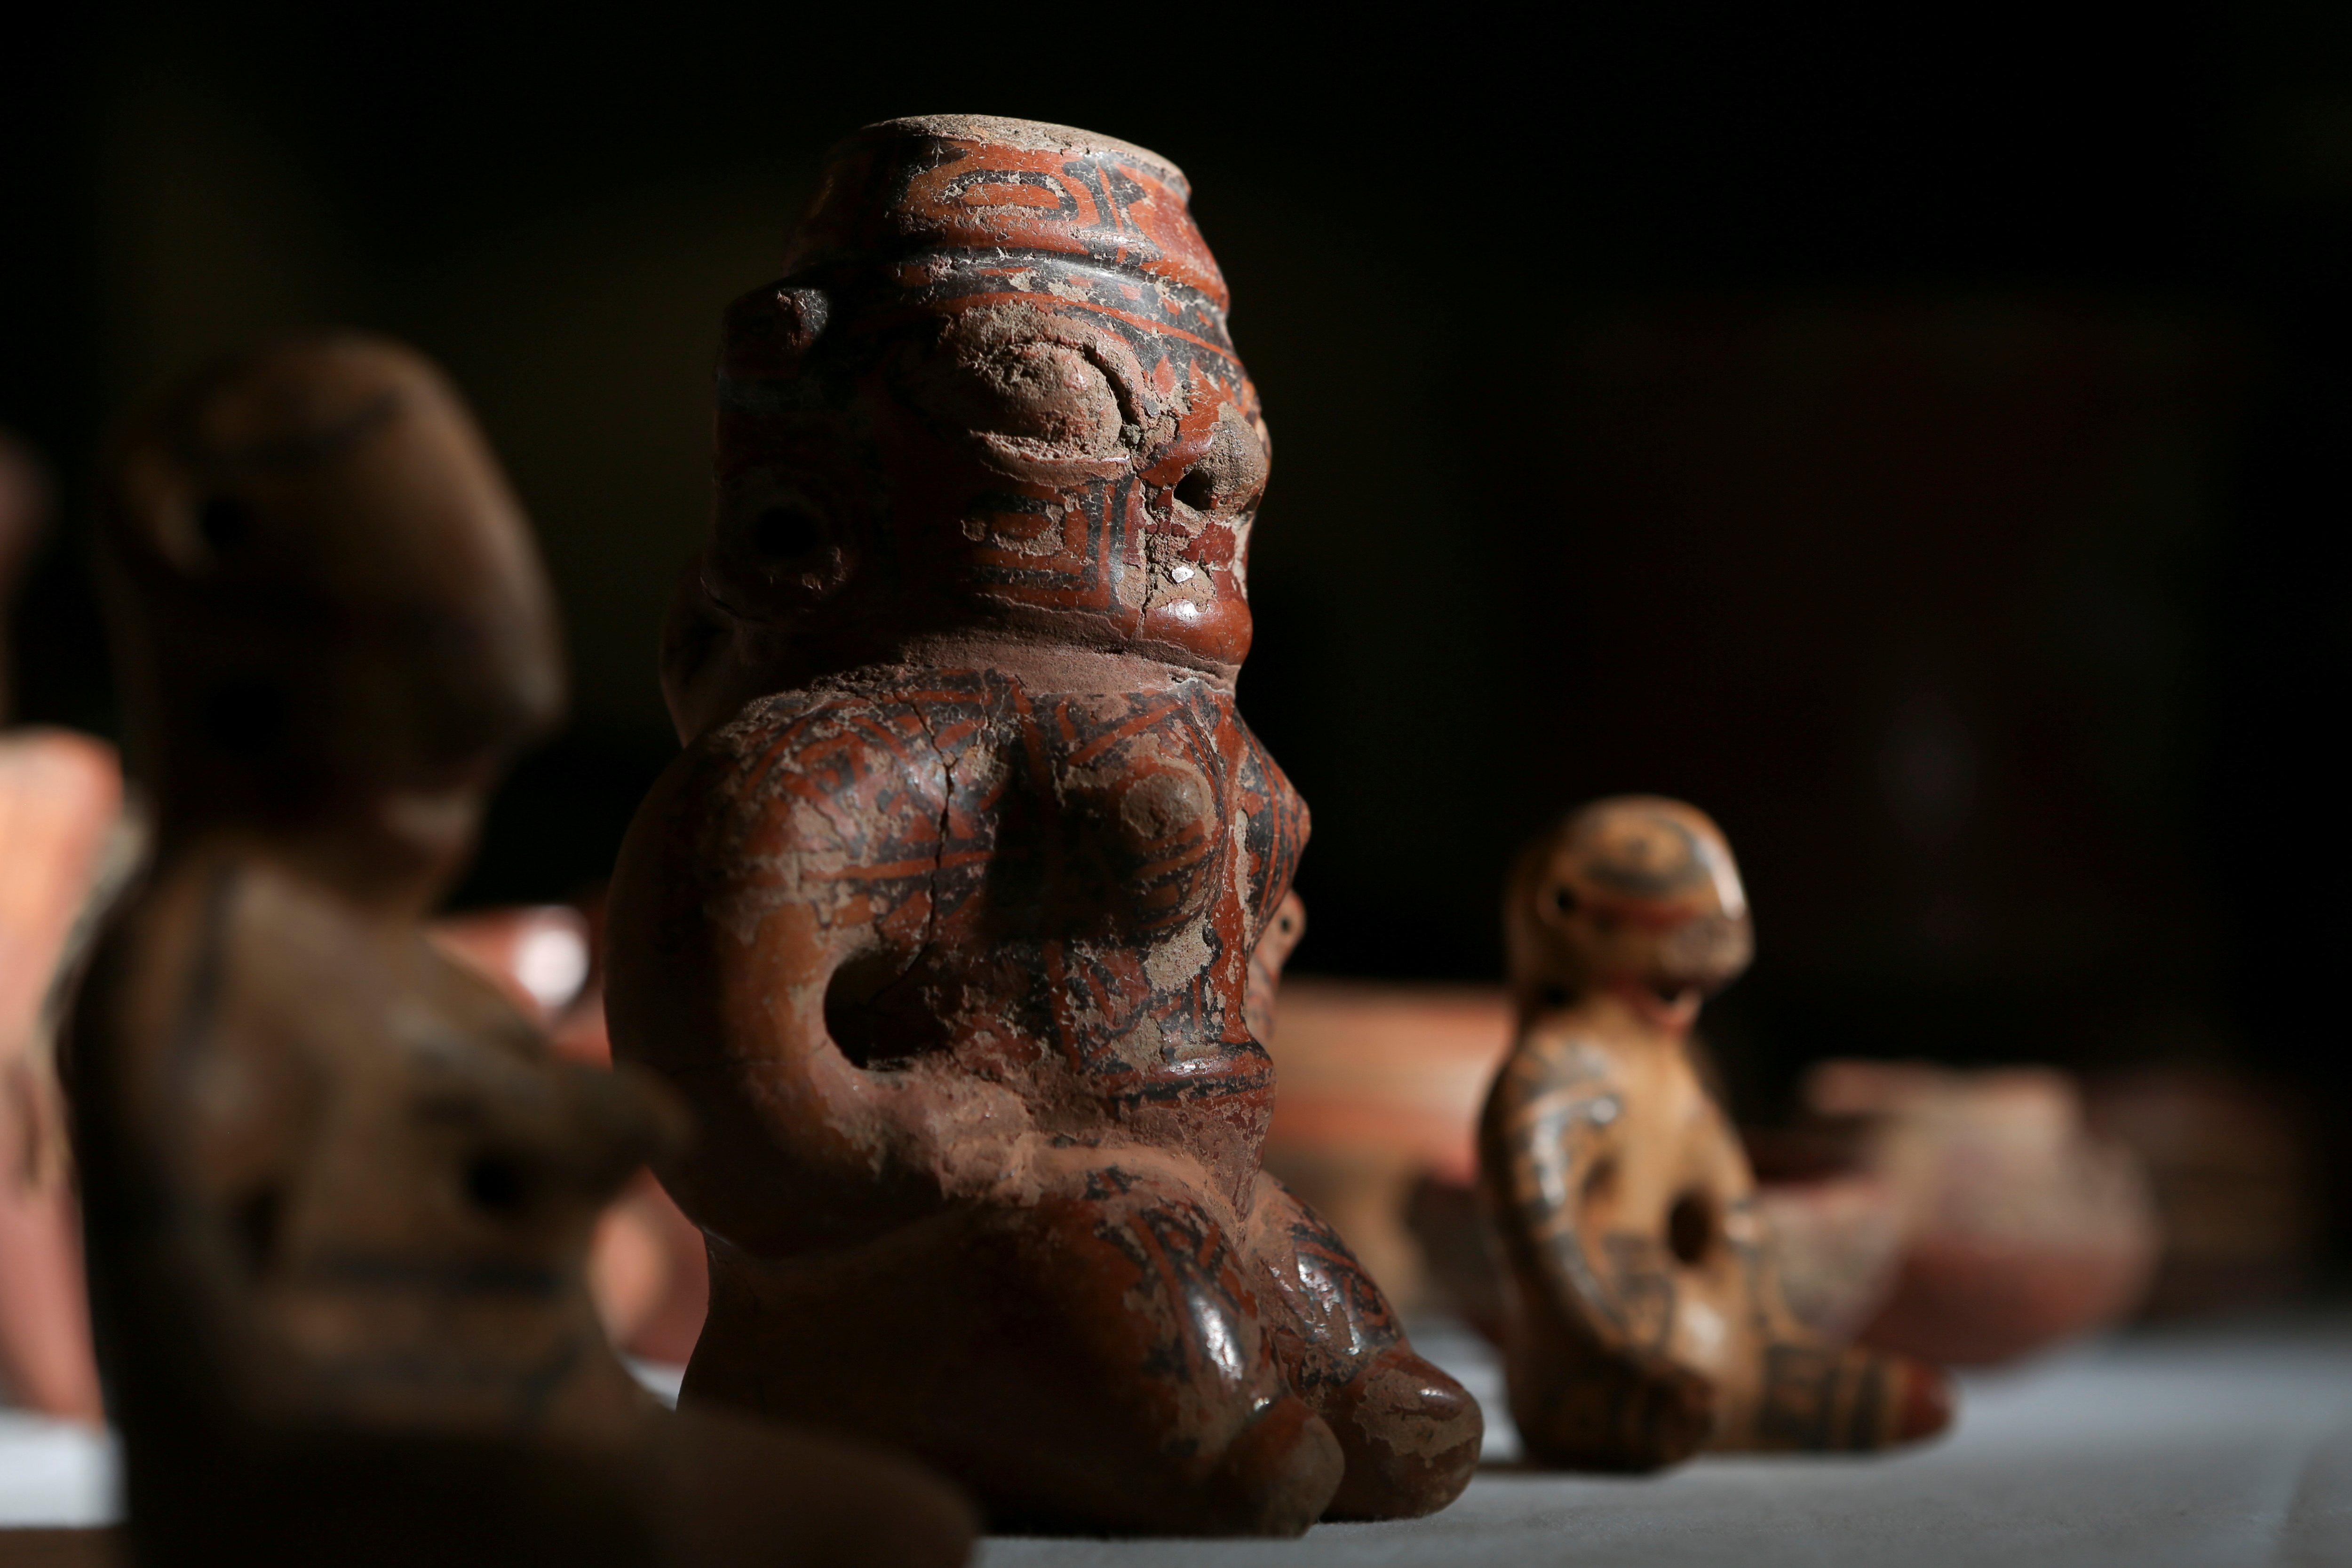 Pre-Columbian statues, repatriated from the Brooklyn Museum in New York, U.S., are displayed for its classification by archaeologists at the facilities of the Costa Rica's National Museum, in Pavas, Costa Rica July 2, 2021. Picture taken  July 2, 2021. REUTERS/Mayela Lopez